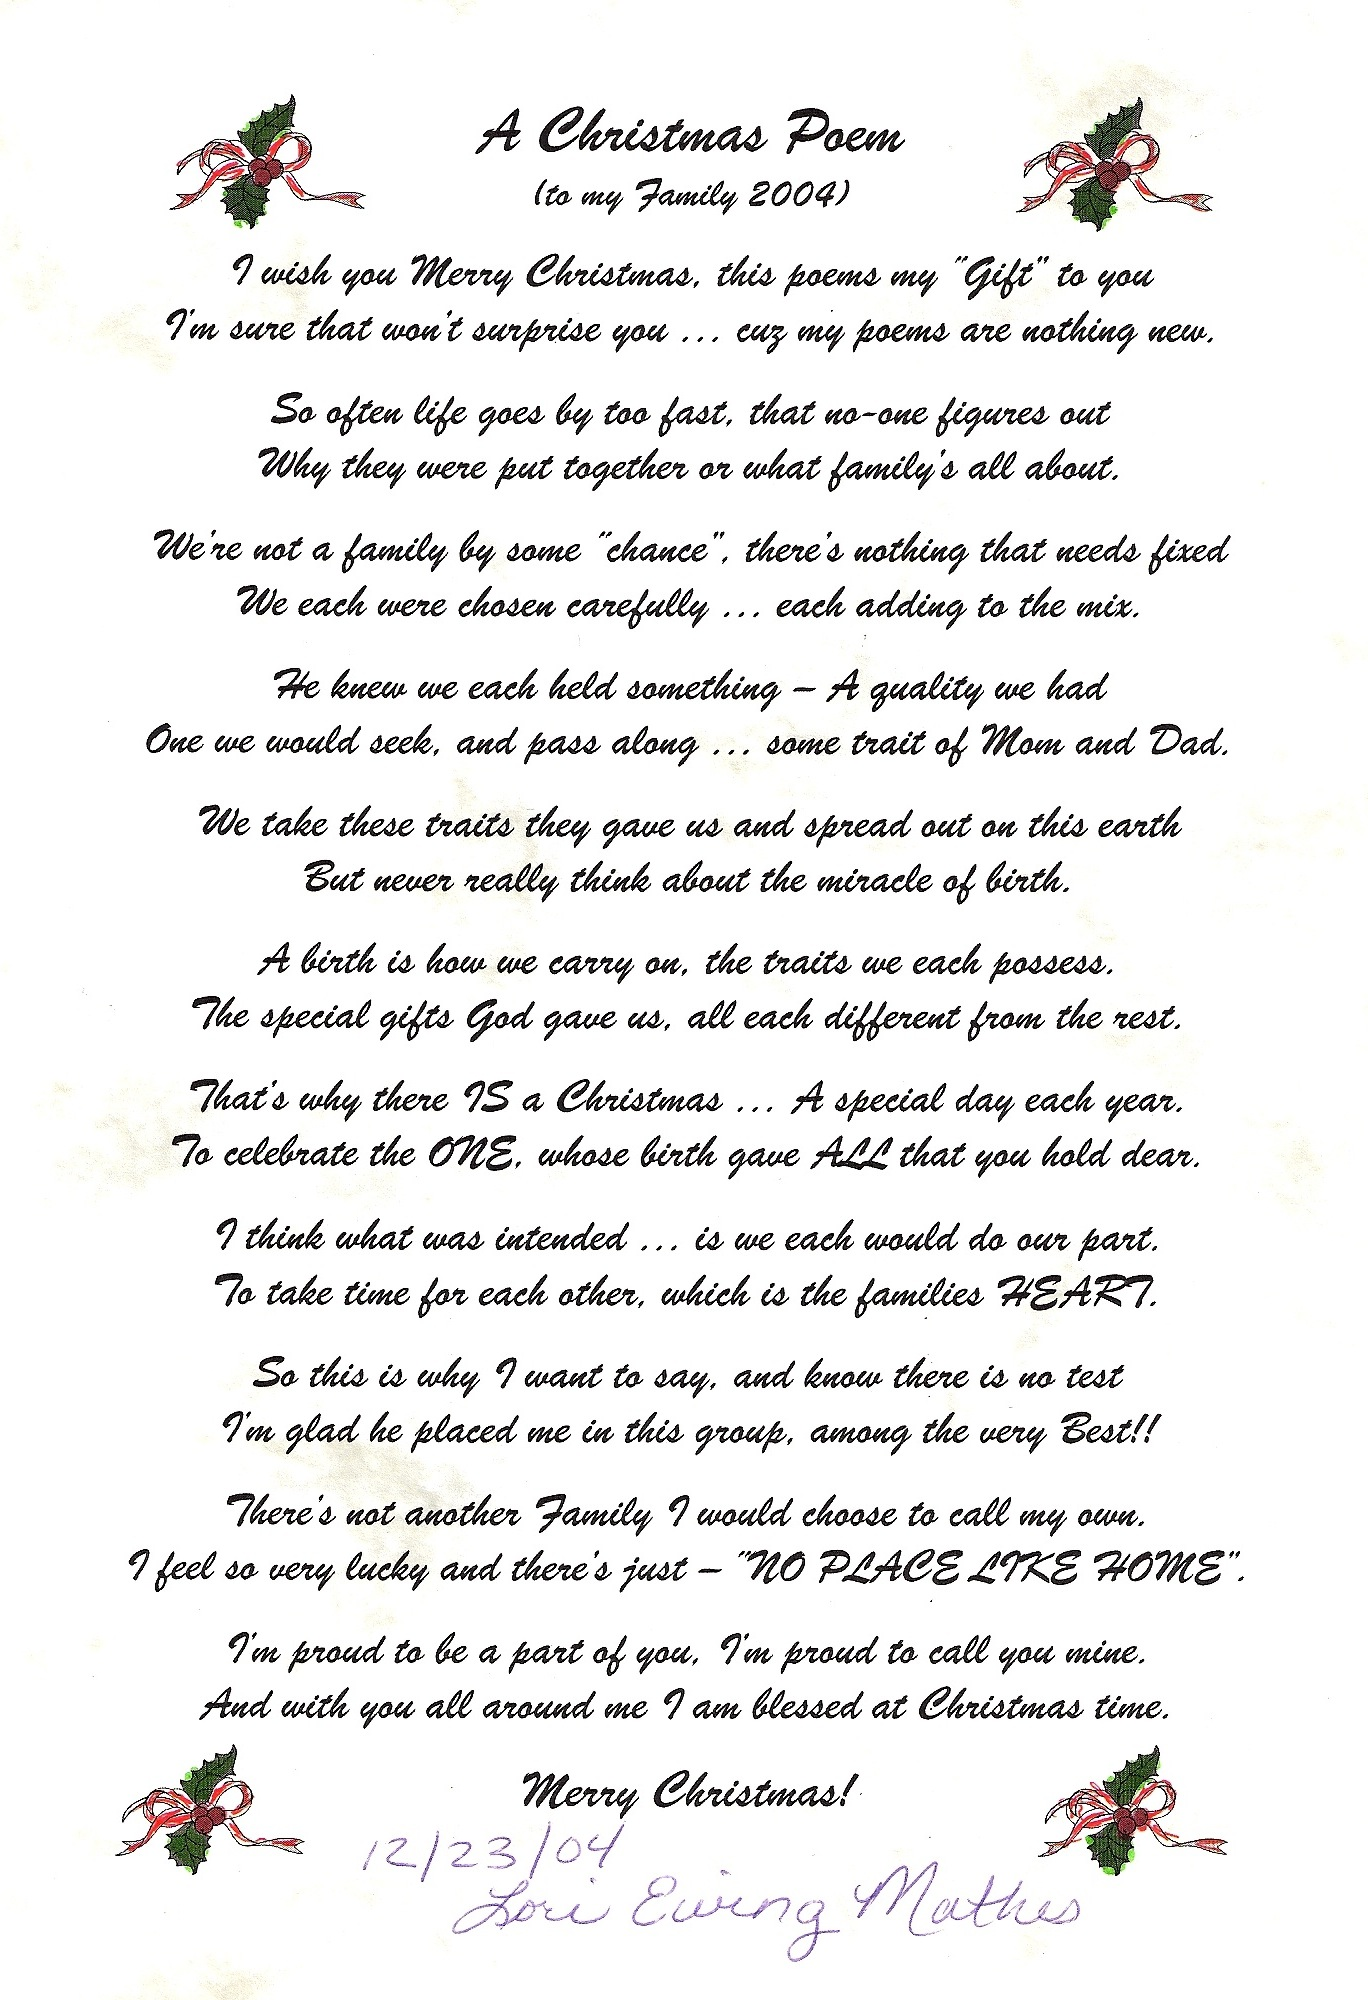 The Christmas Poem by Lori Mathes